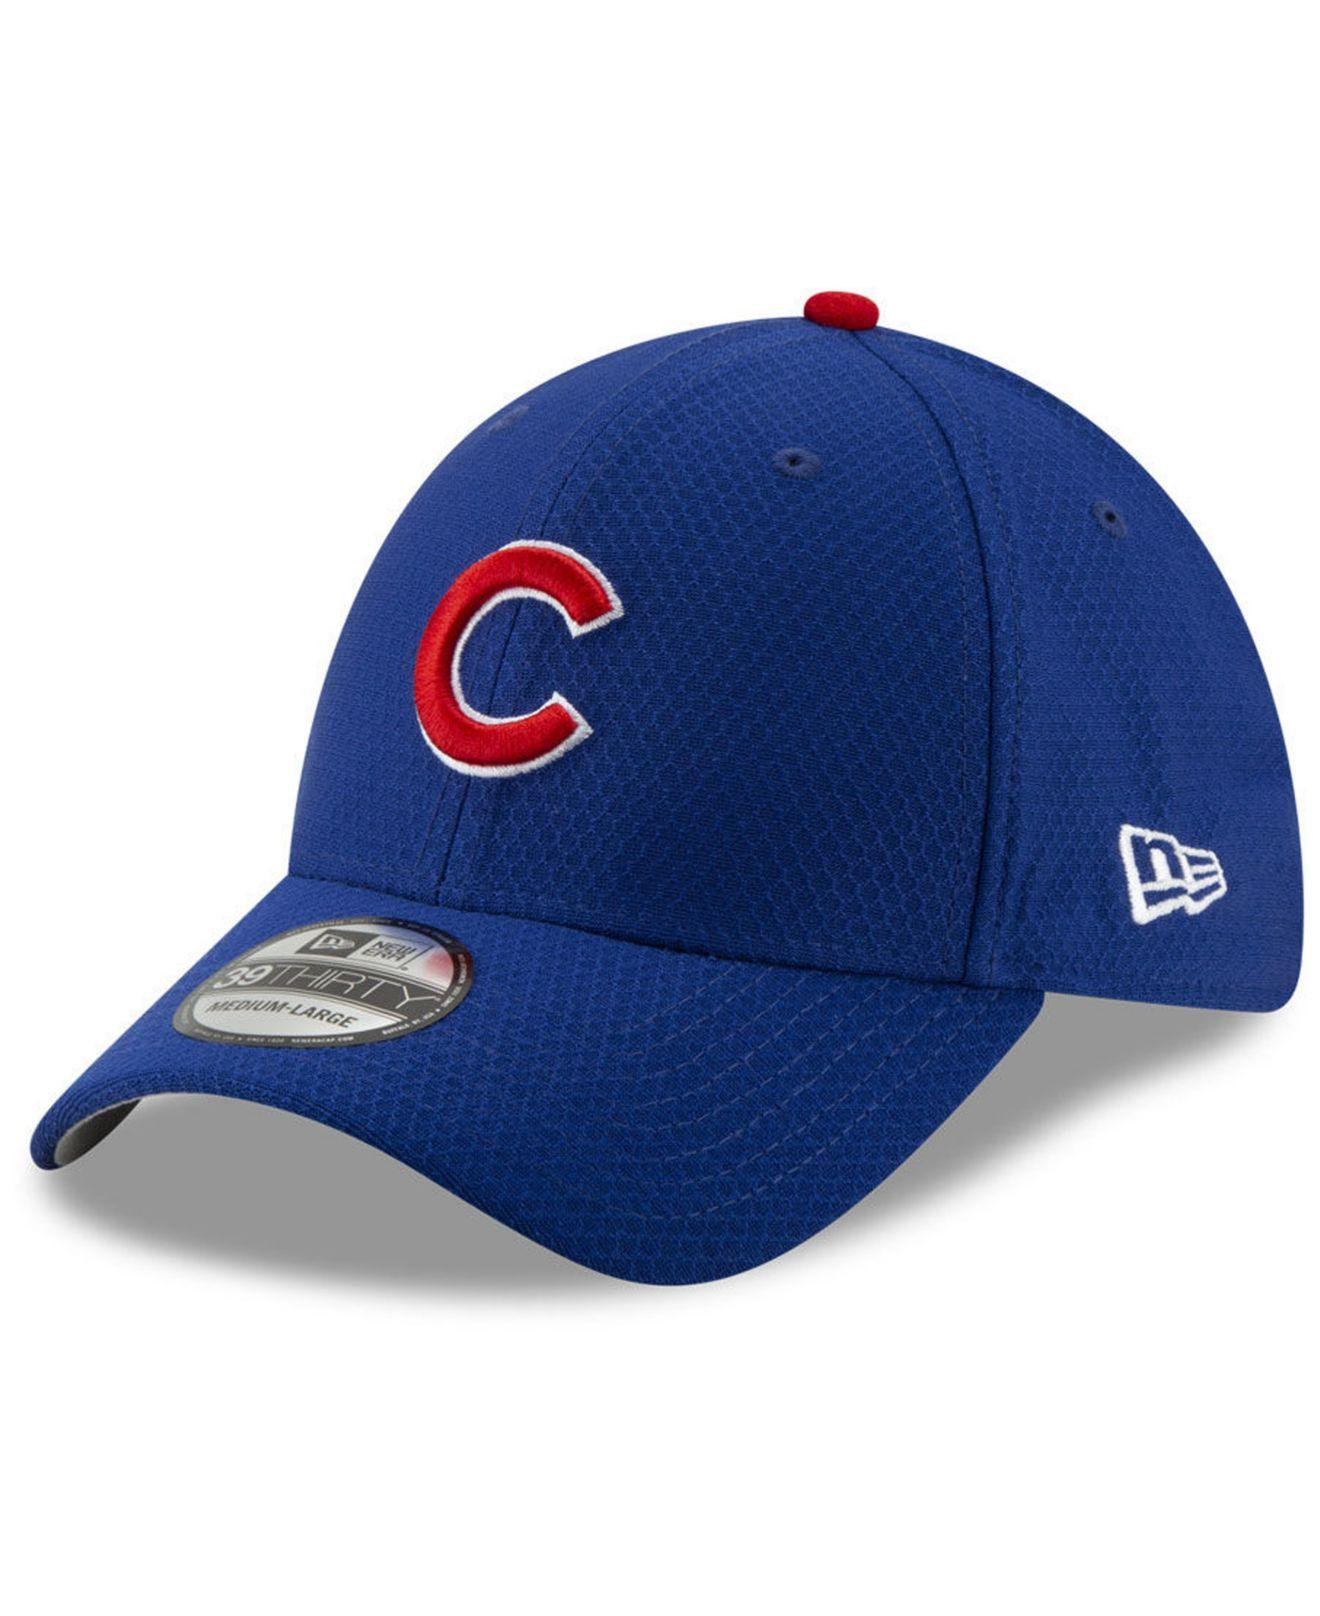 52e864a1 Lyst - KTZ Chicago Cubs Batting Practice 39thirty Cap in Blue for Men